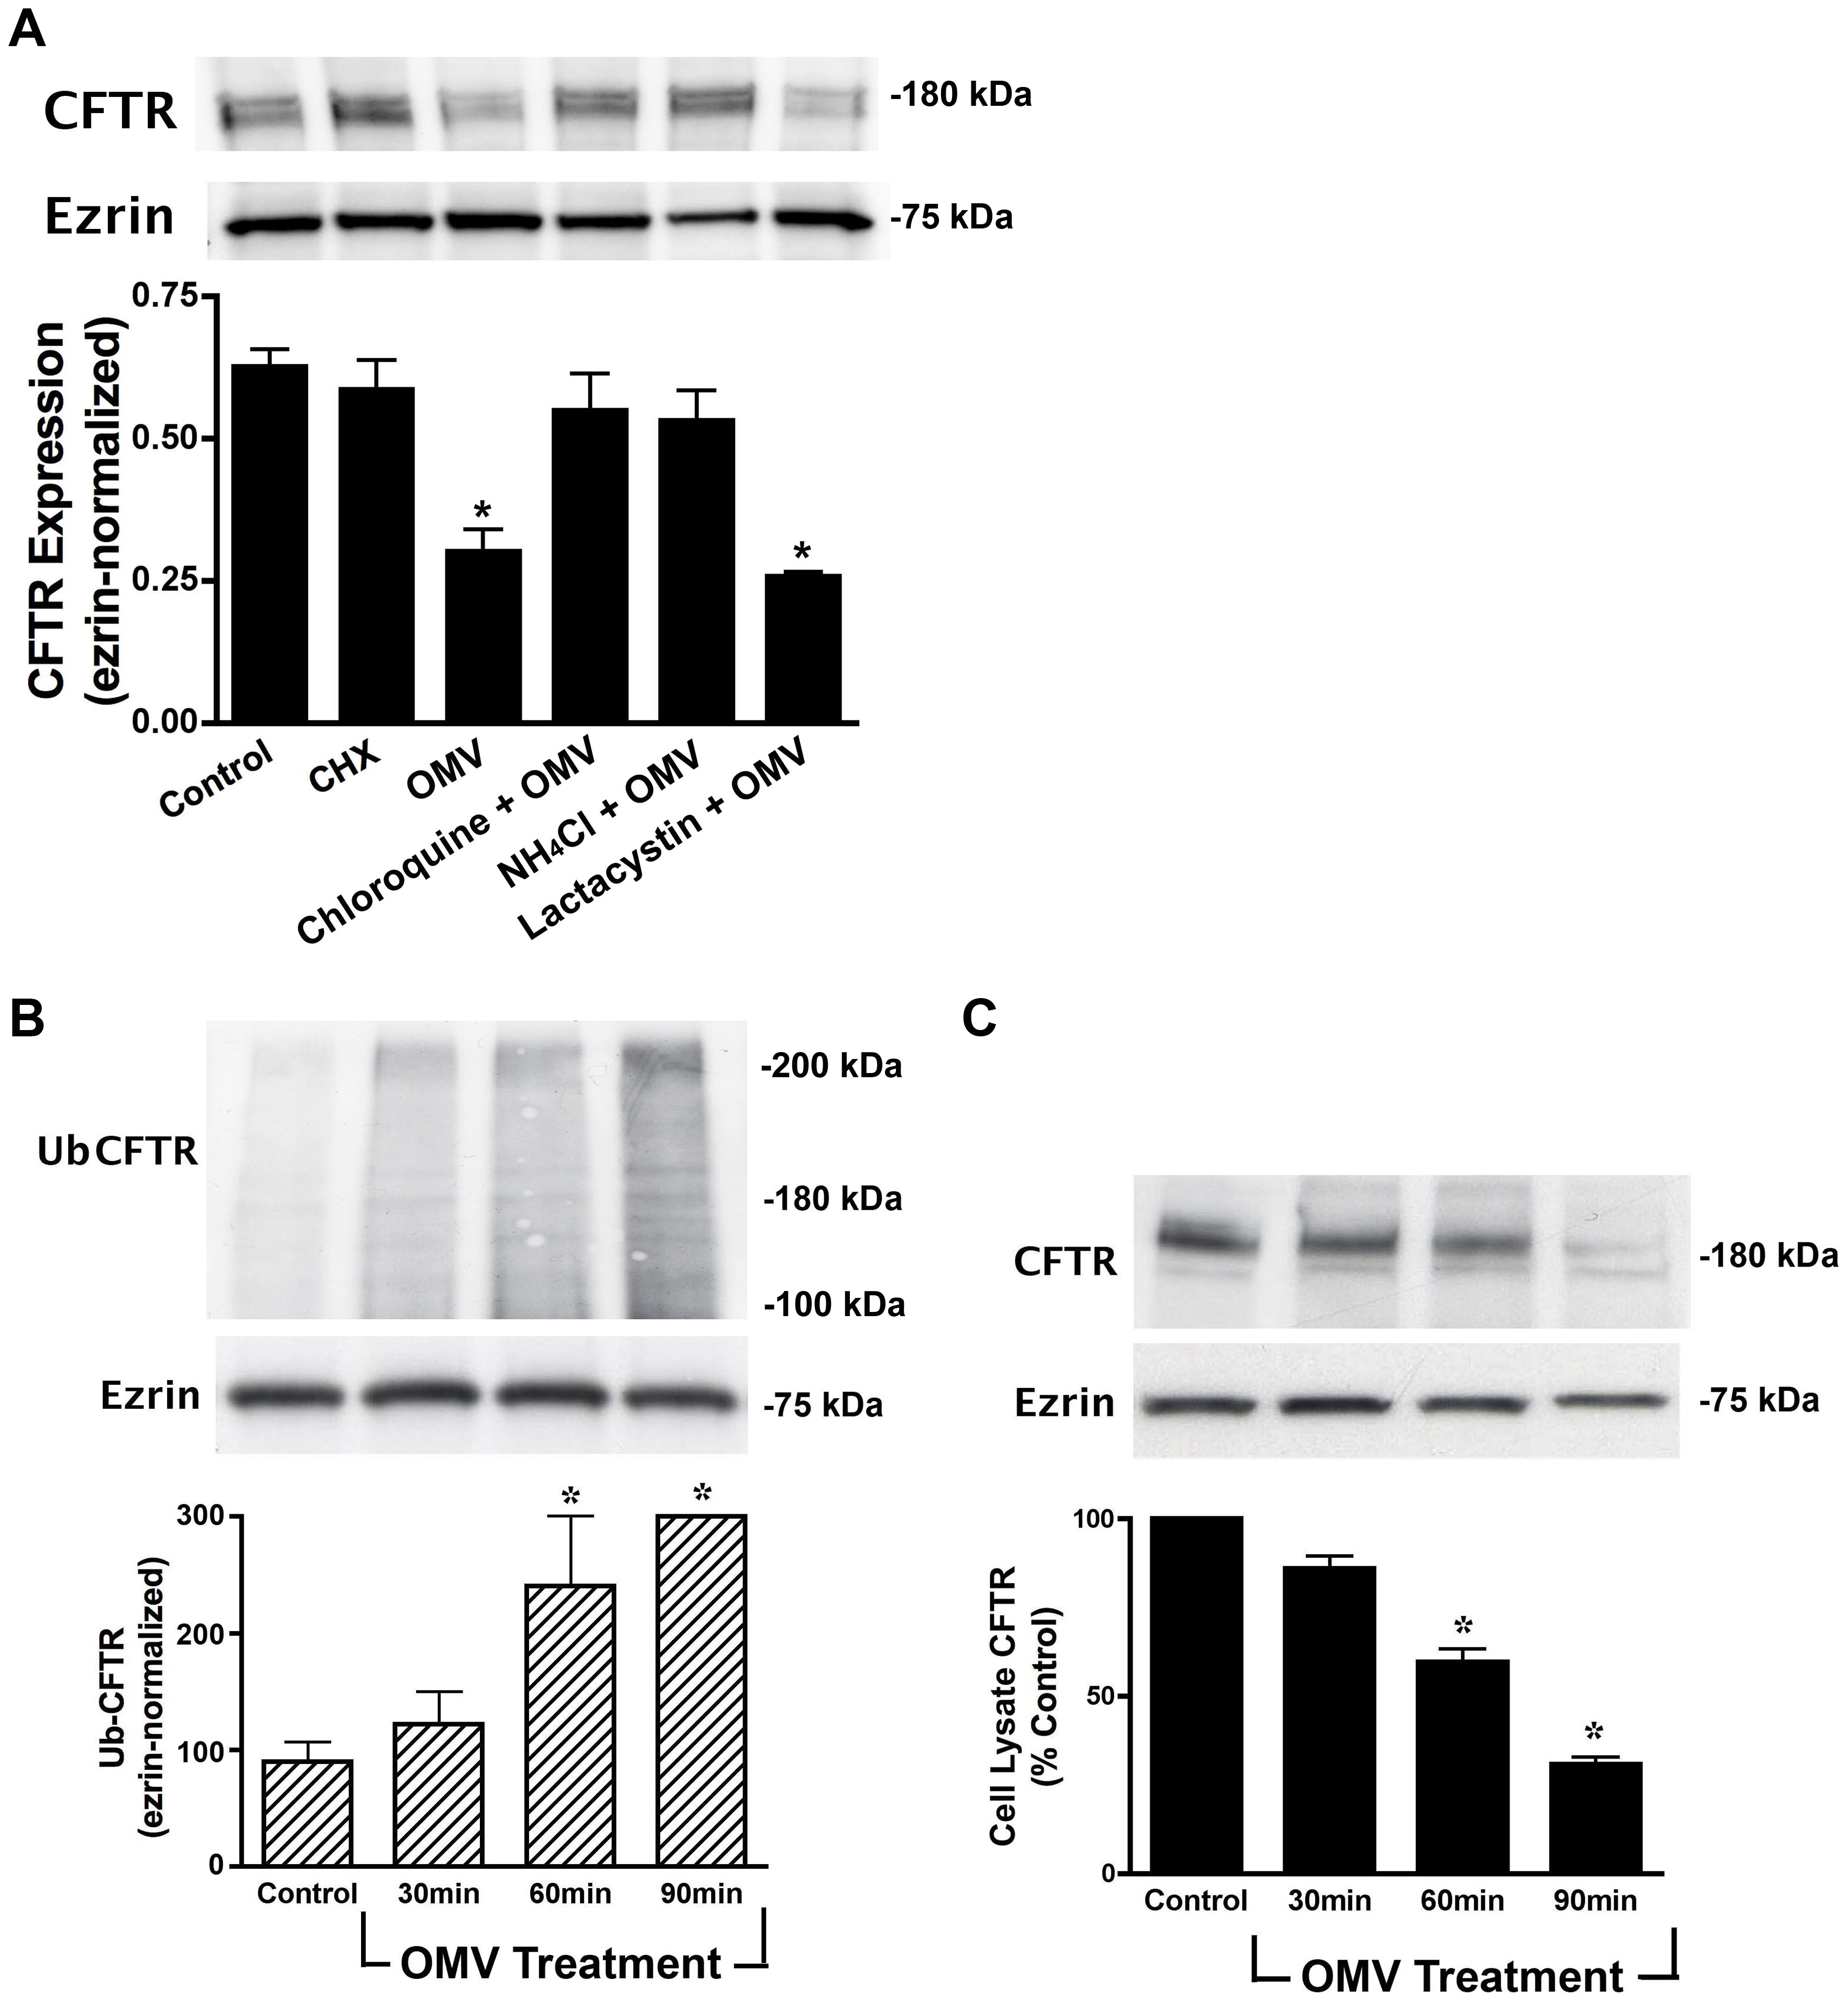 Cif induces the lysosomal-mediated degradation of CFTR in polarized human airway epithelial cells.